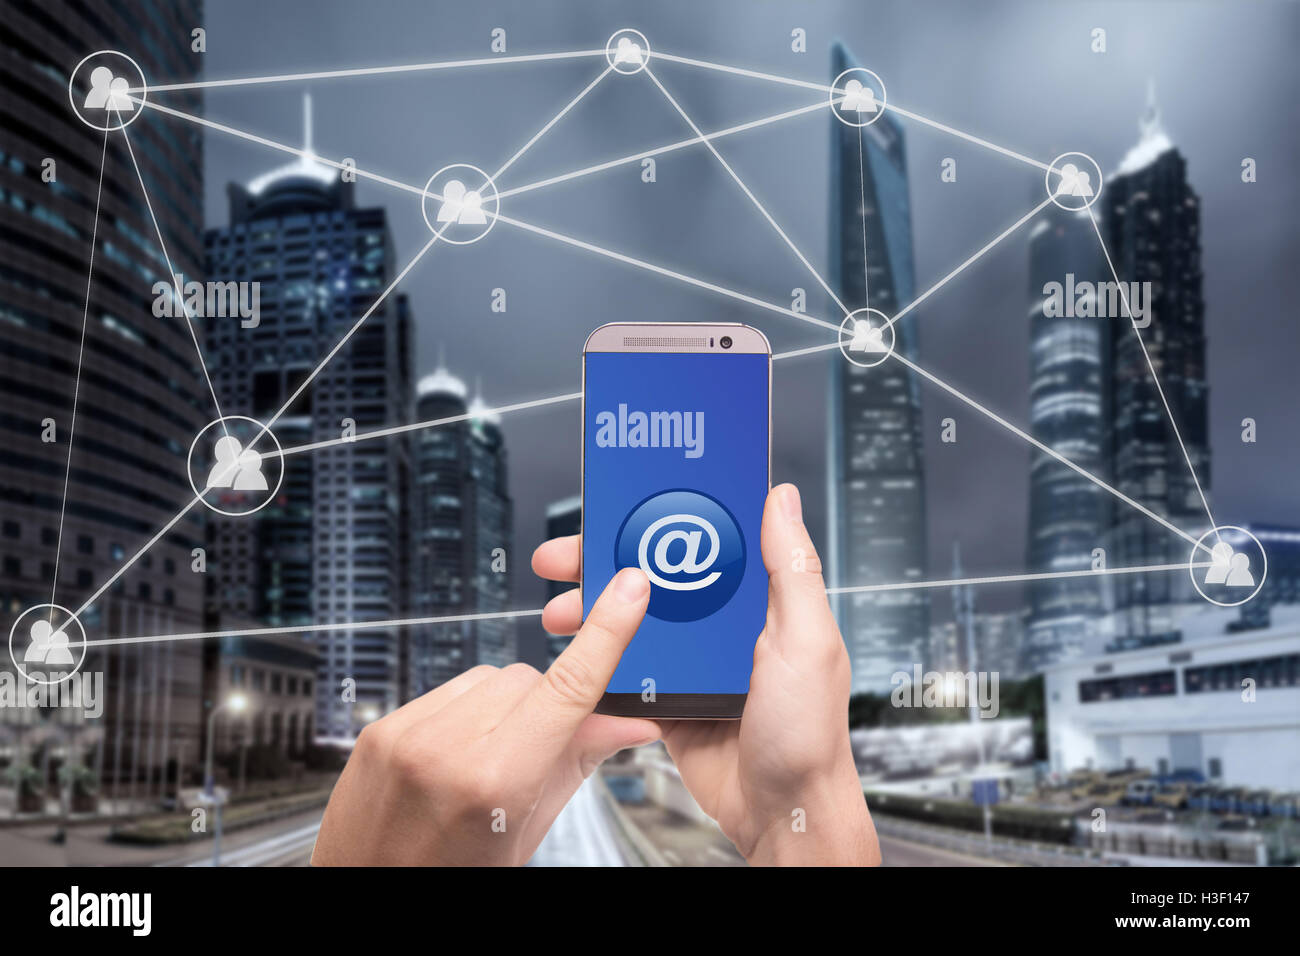 Hand holding smart phone and click on button with at sign linked with people icons. Email marketing, newsletter - Stock Image